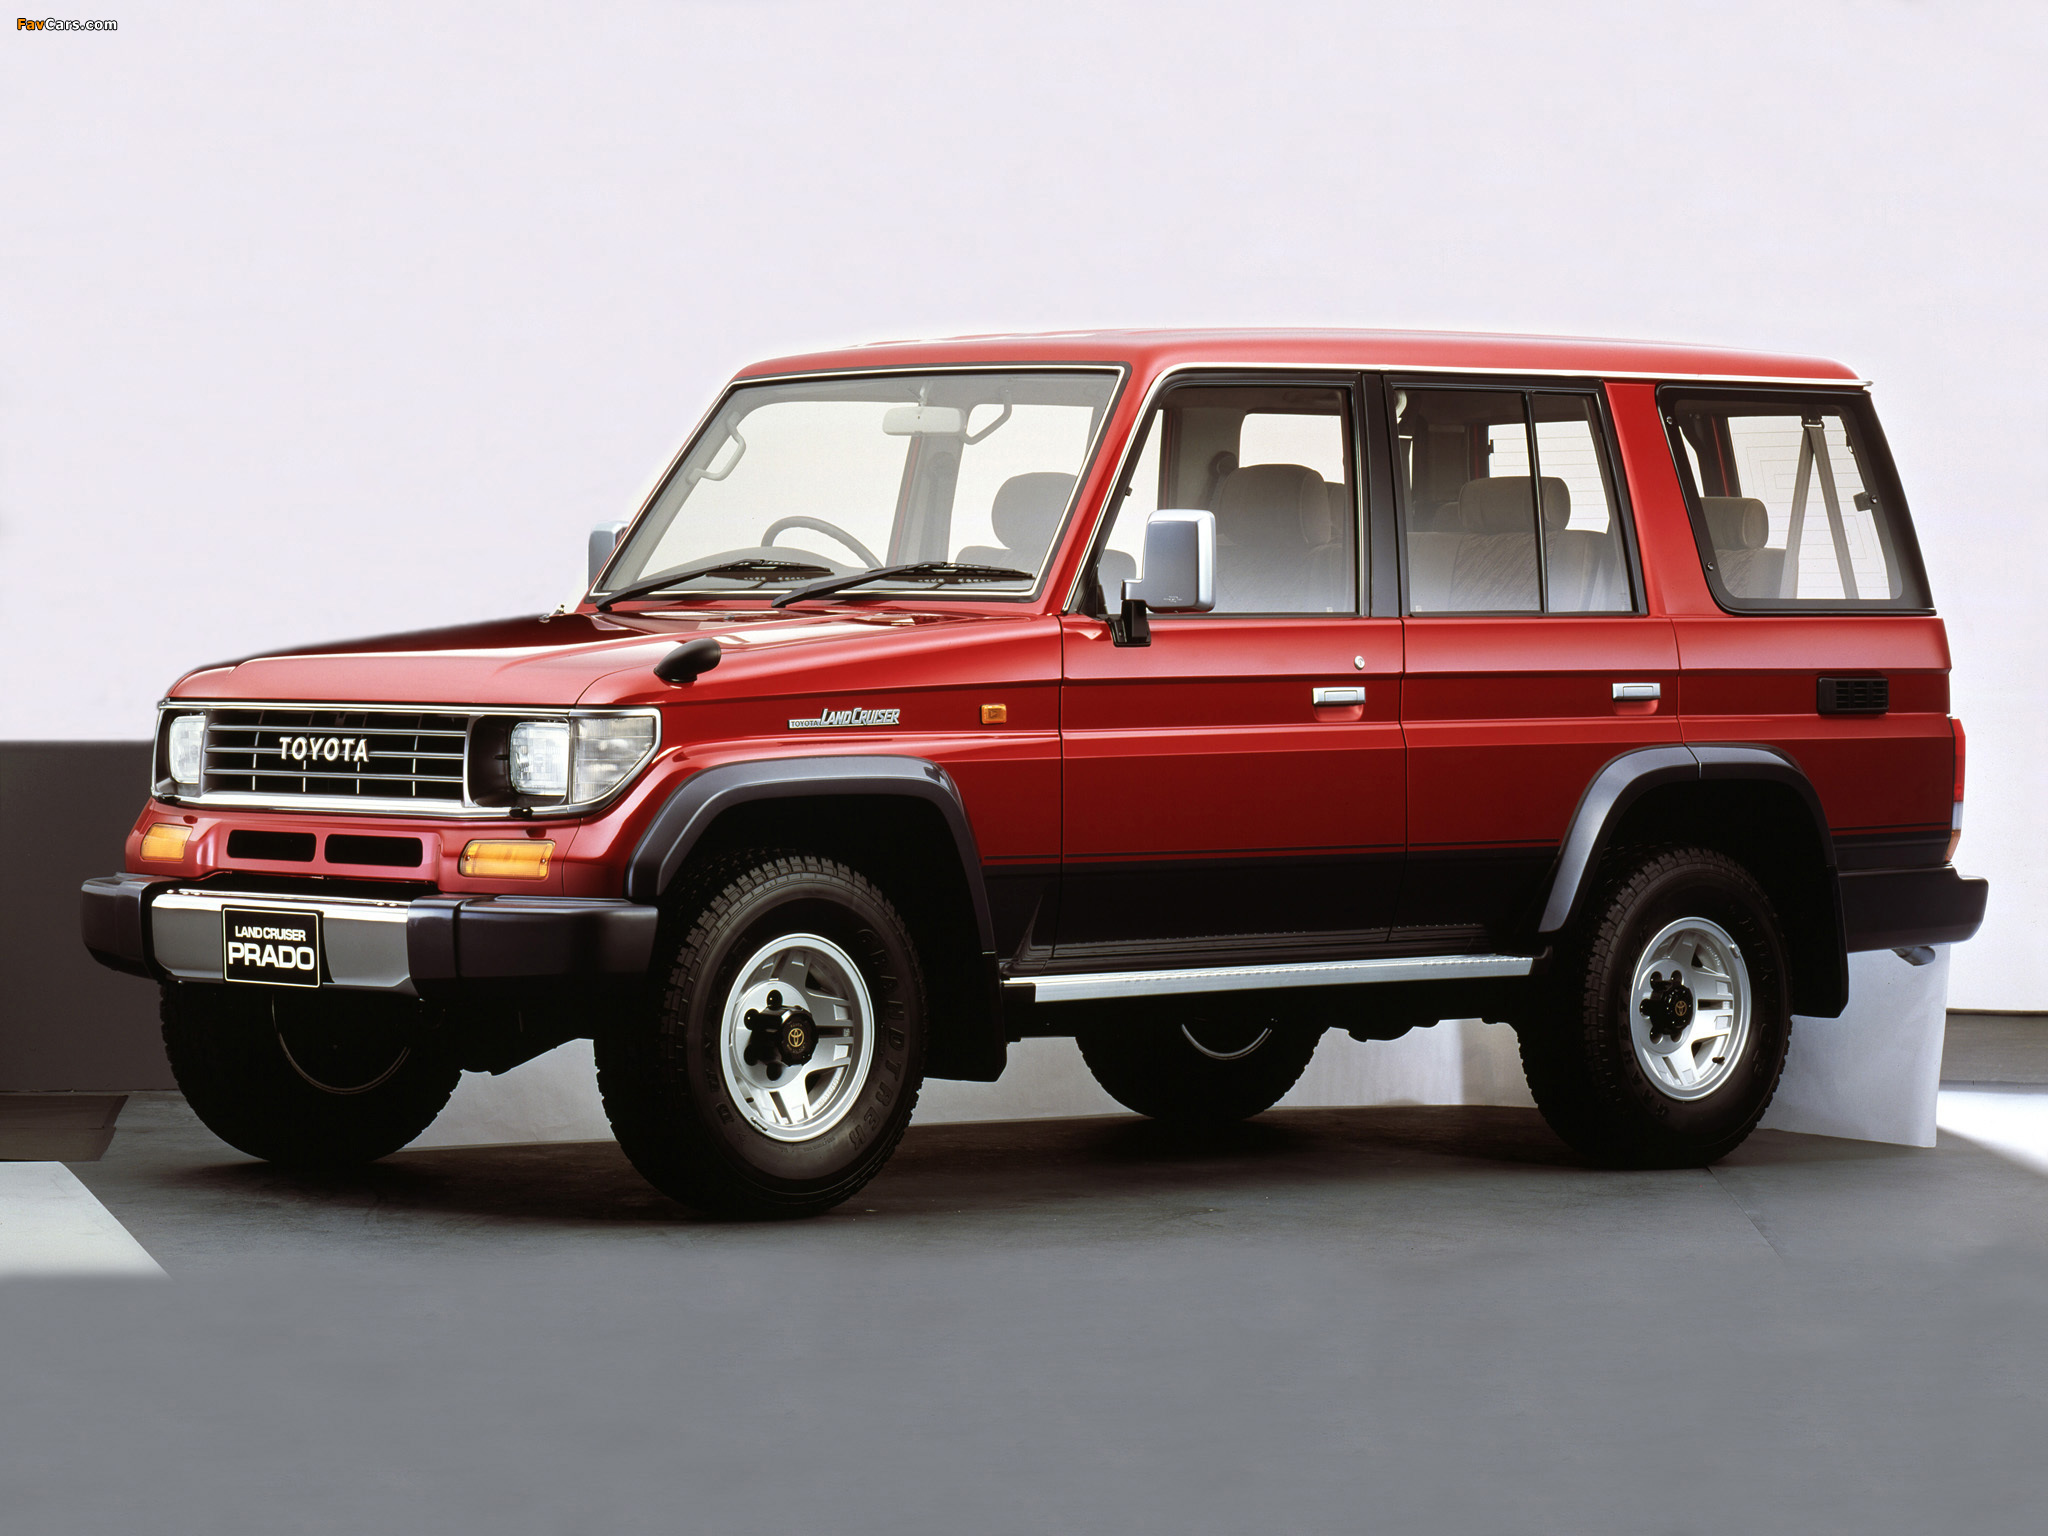 Fr furthermore 5815dea26635182d6a38cc91 further 2018 Land Rover Defender Price likewise Watch as well 2017 Land Cruiser Xtreme Xtreme Measures. on land cruiser prado 2018